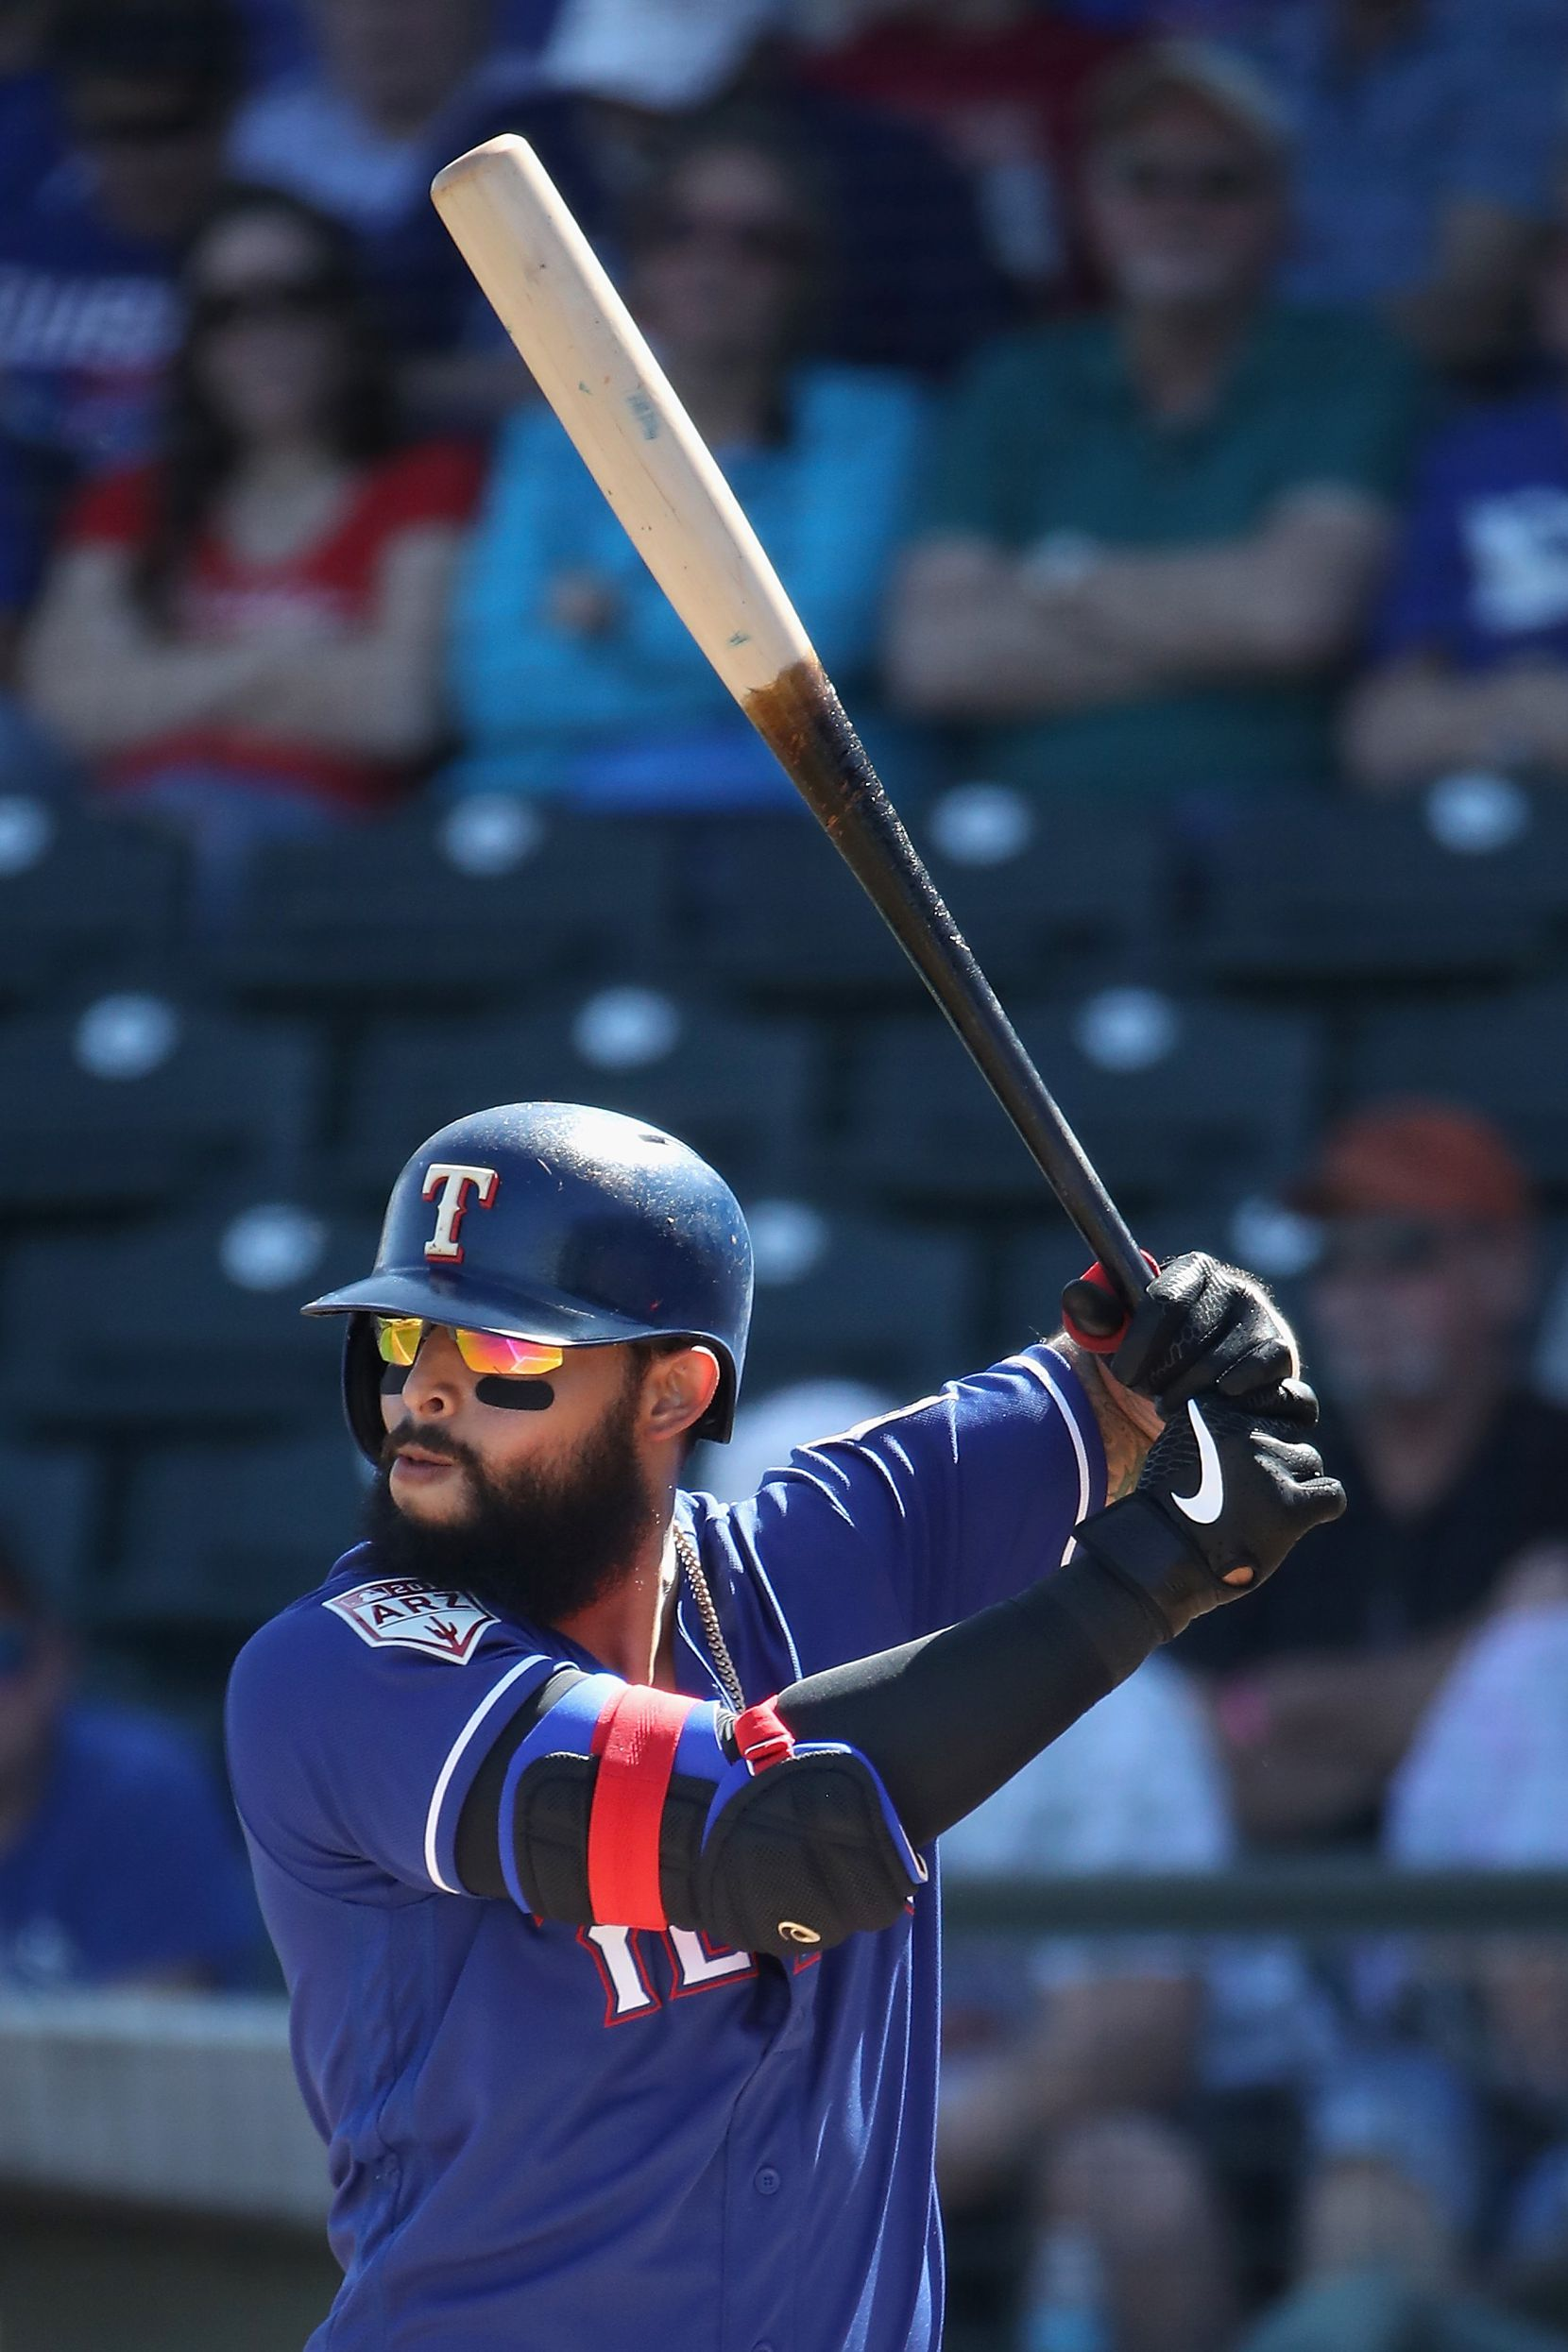 Rougned Odor (Photo by Christian Petersen/Getty Images)